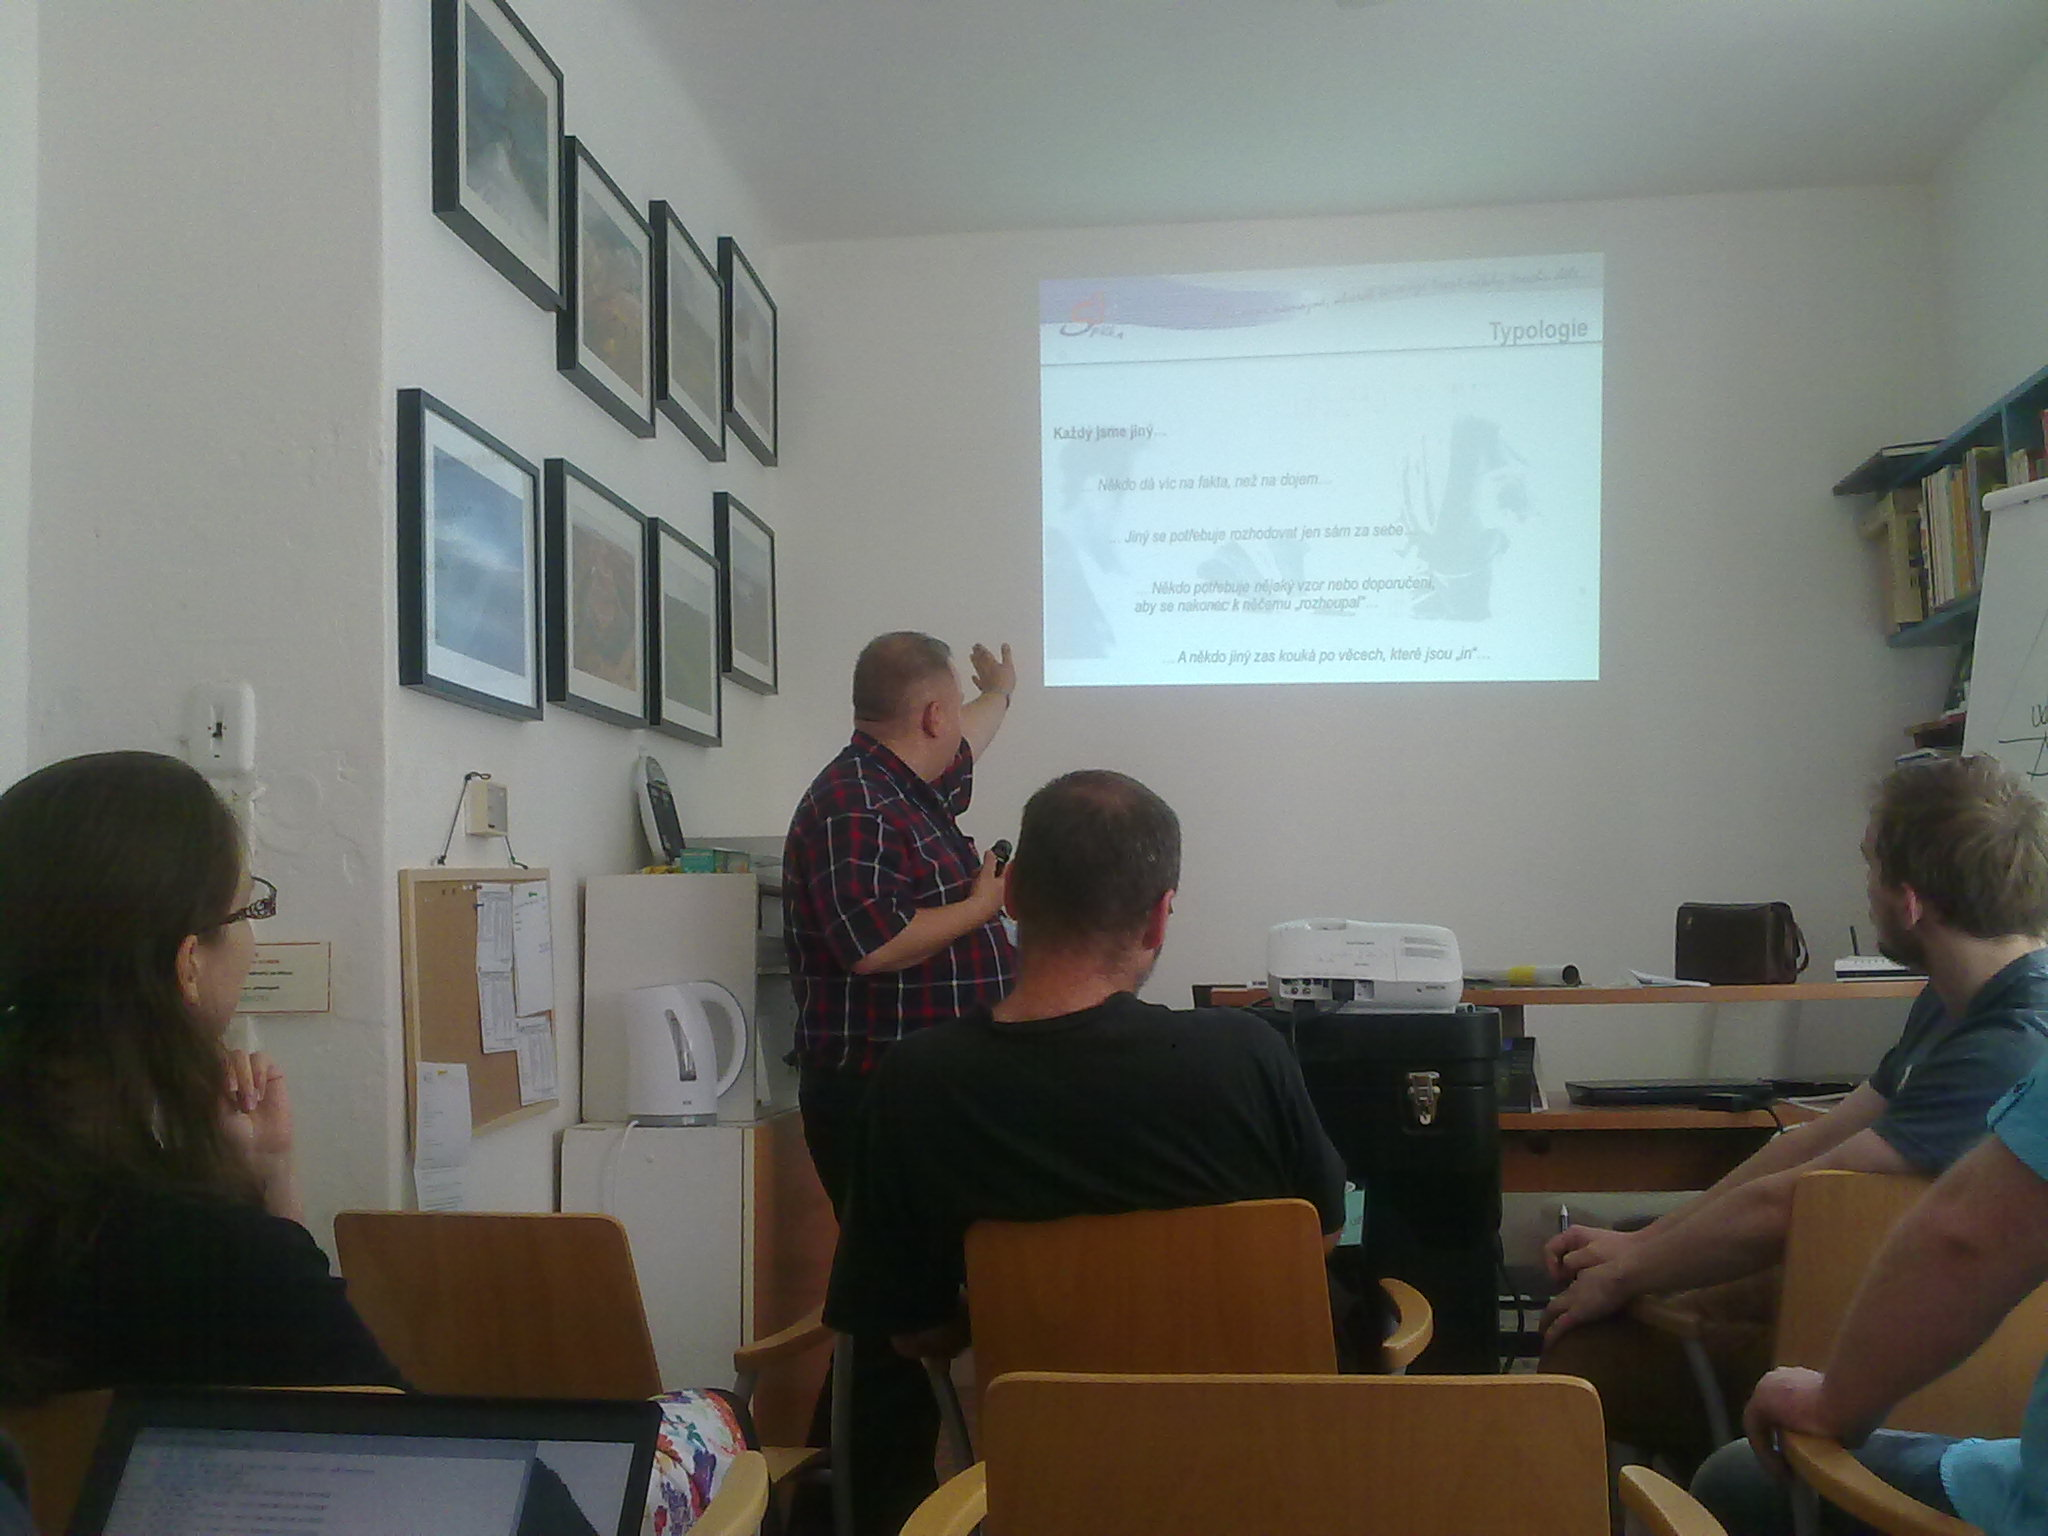 Workshop with Ivo Spilka, Wikimedia Czech Republic Office, photo 2.jpg